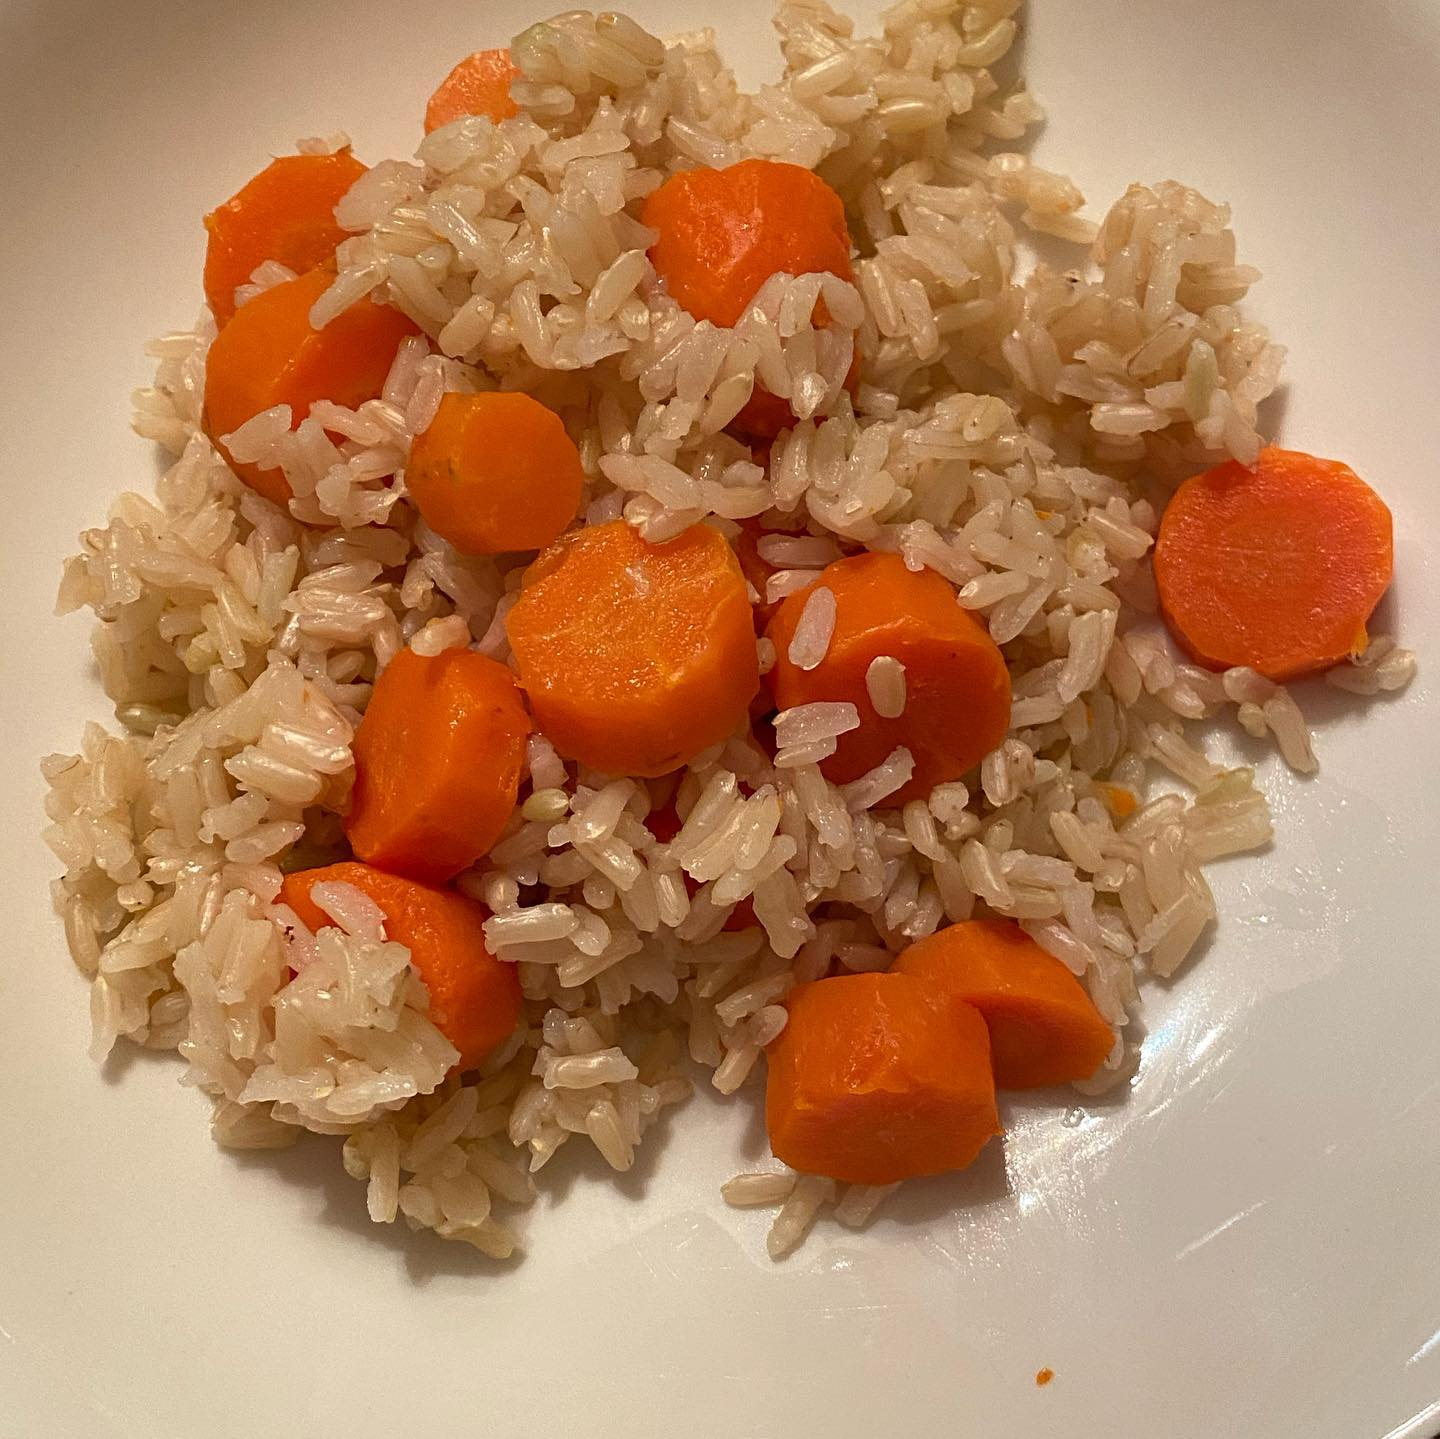 How to Cook Brown Rice with Yams or Root Veggies in One Pot VitaClay Rice Cooker?